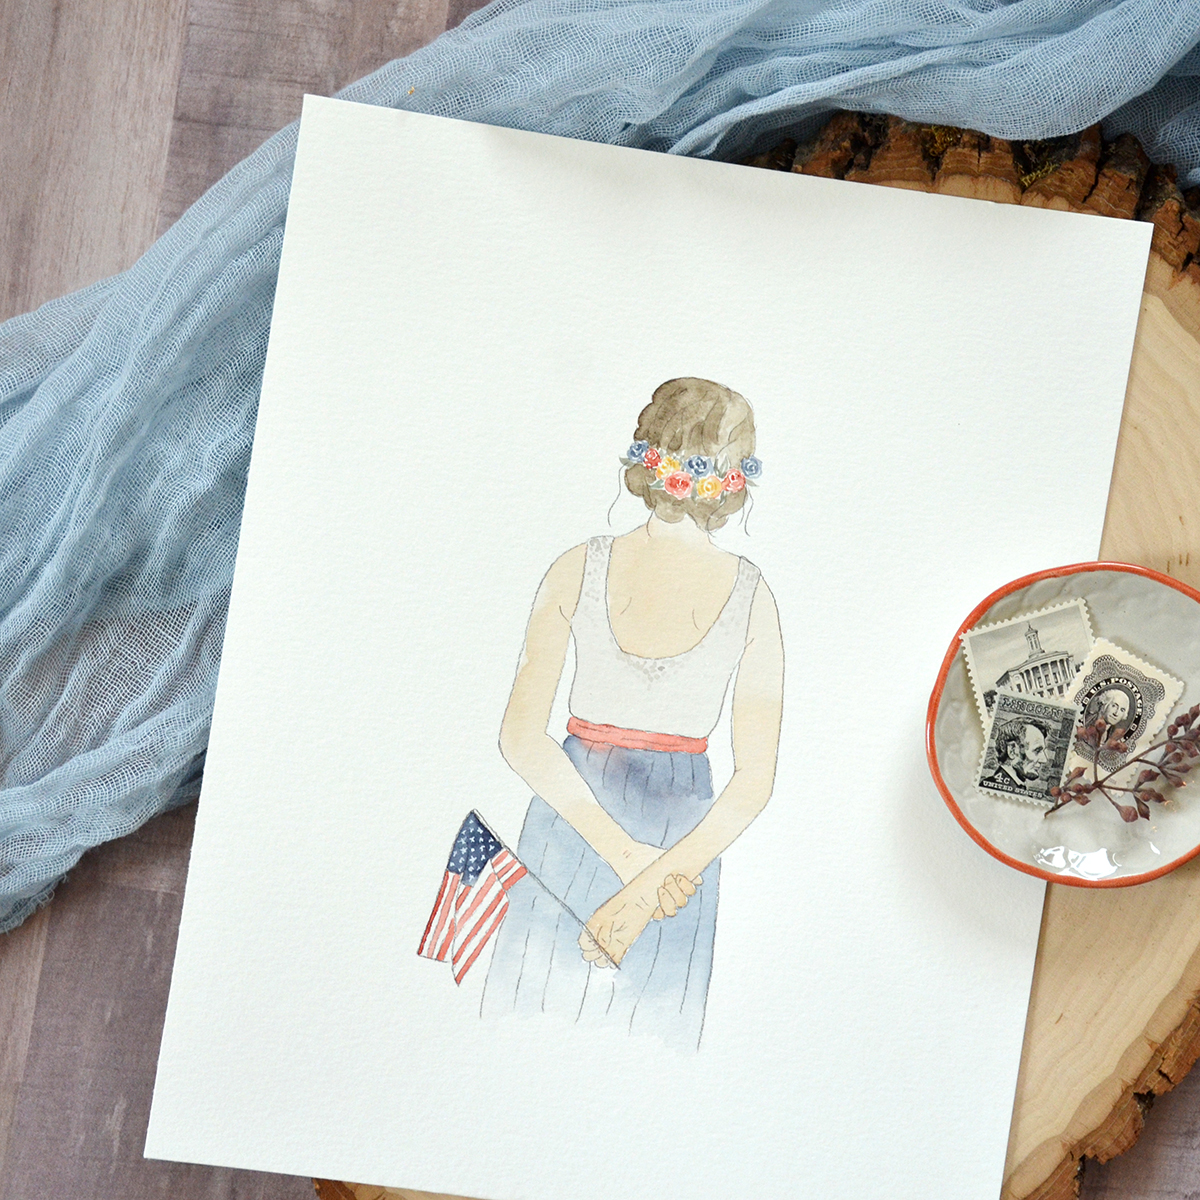 Sam Allen Creates – Watercolor Portrait of 4th of July Patriotic Woman with Floral Wreath